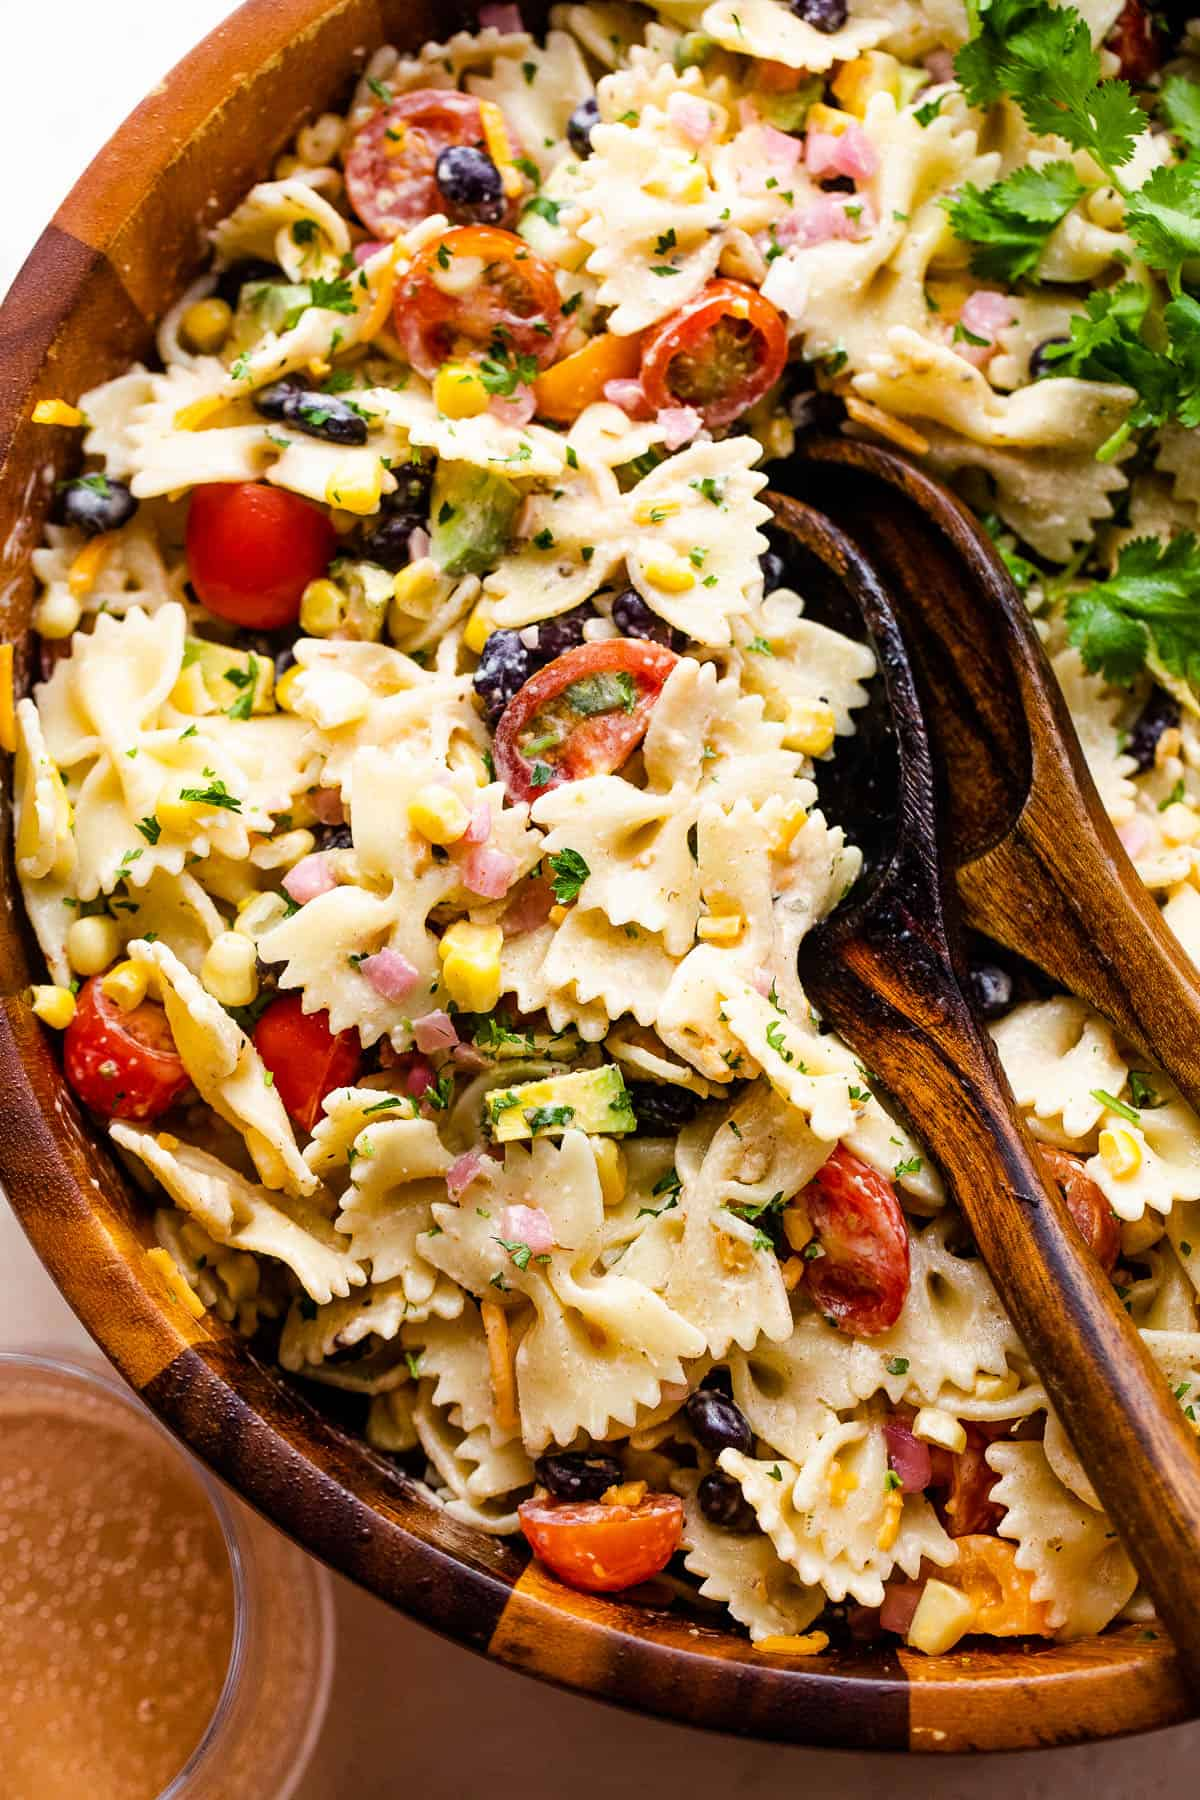 fiesta pasta salad in a wooden salad bowl with two wooden spoons